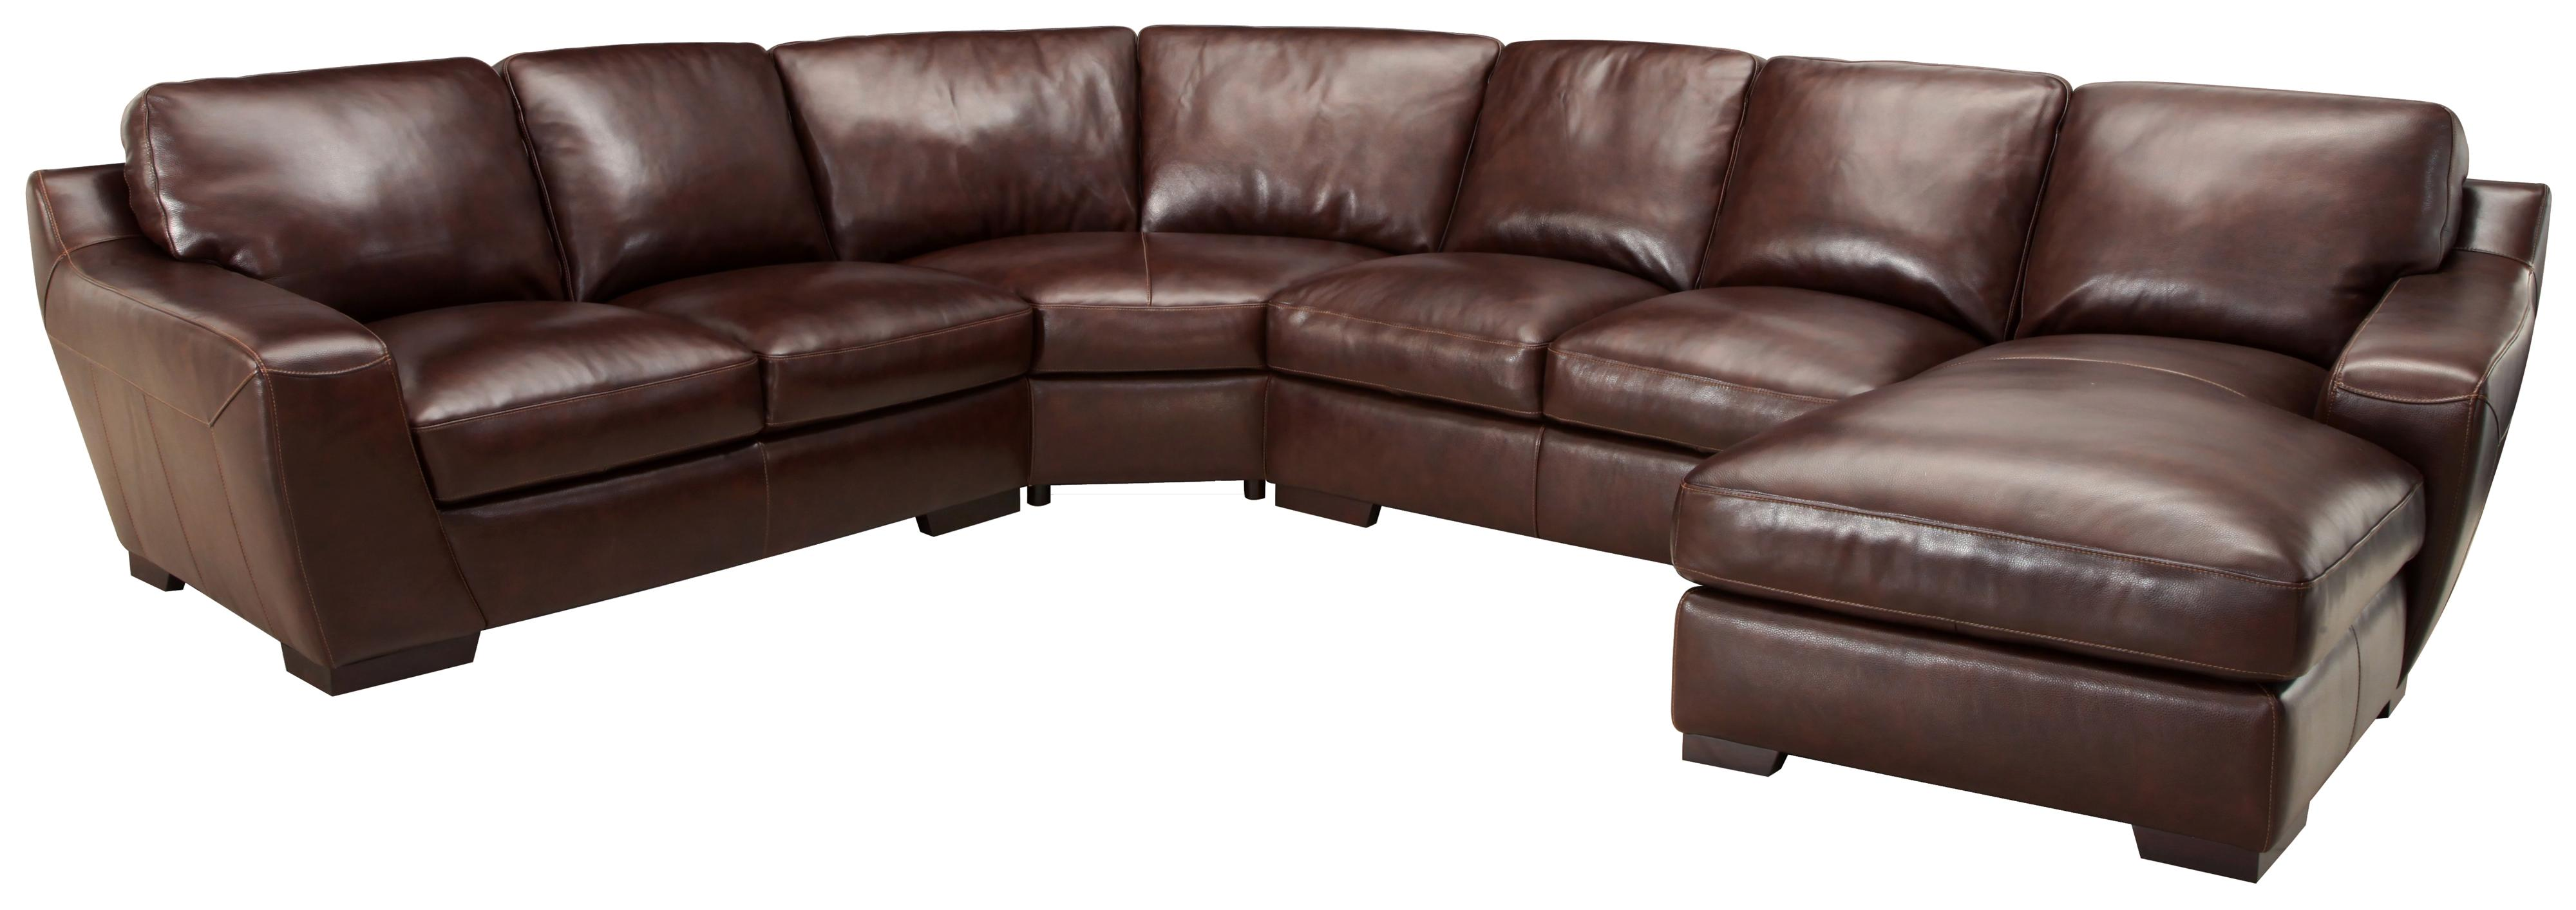 6948 Corner Sectional Sofa with Chaise by Simon Li at Dean Bosler's